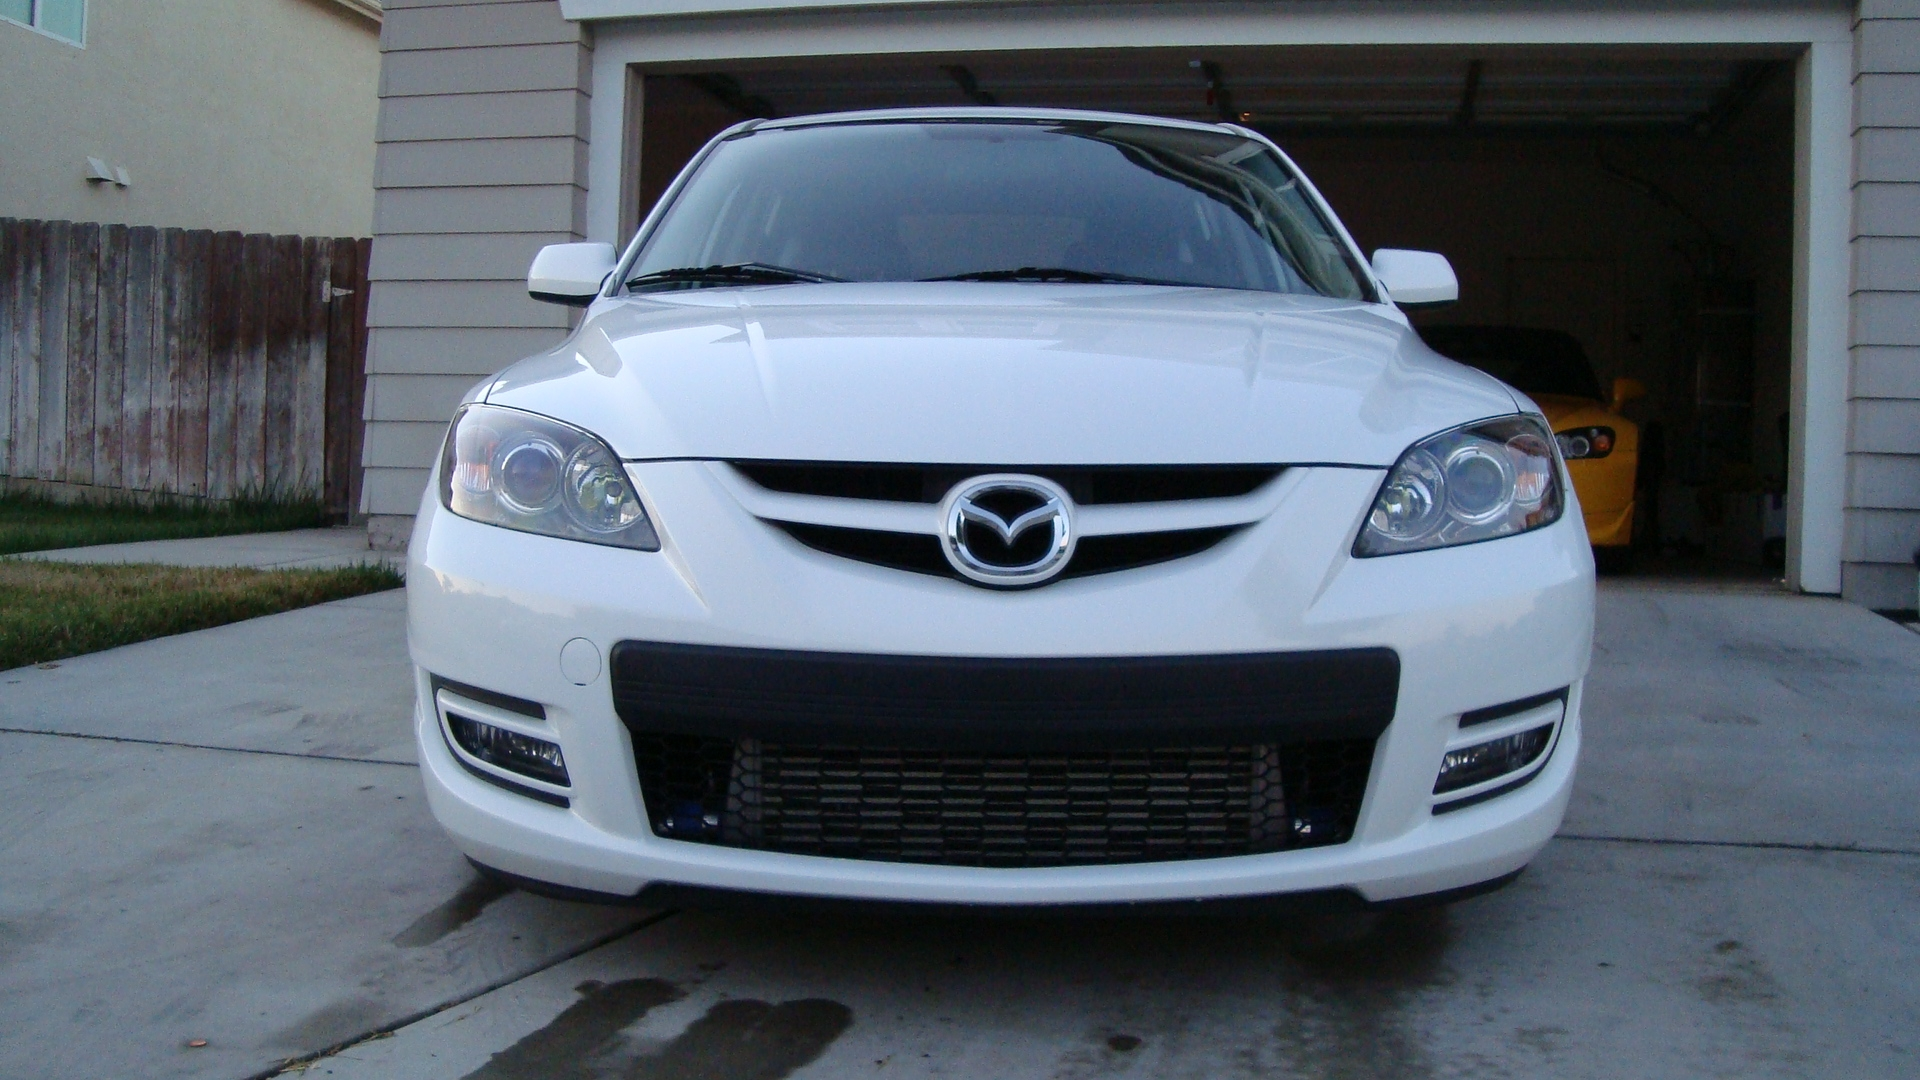 skyspeed 2008 mazda mazda3 specs photos modification info at cardomain. Black Bedroom Furniture Sets. Home Design Ideas